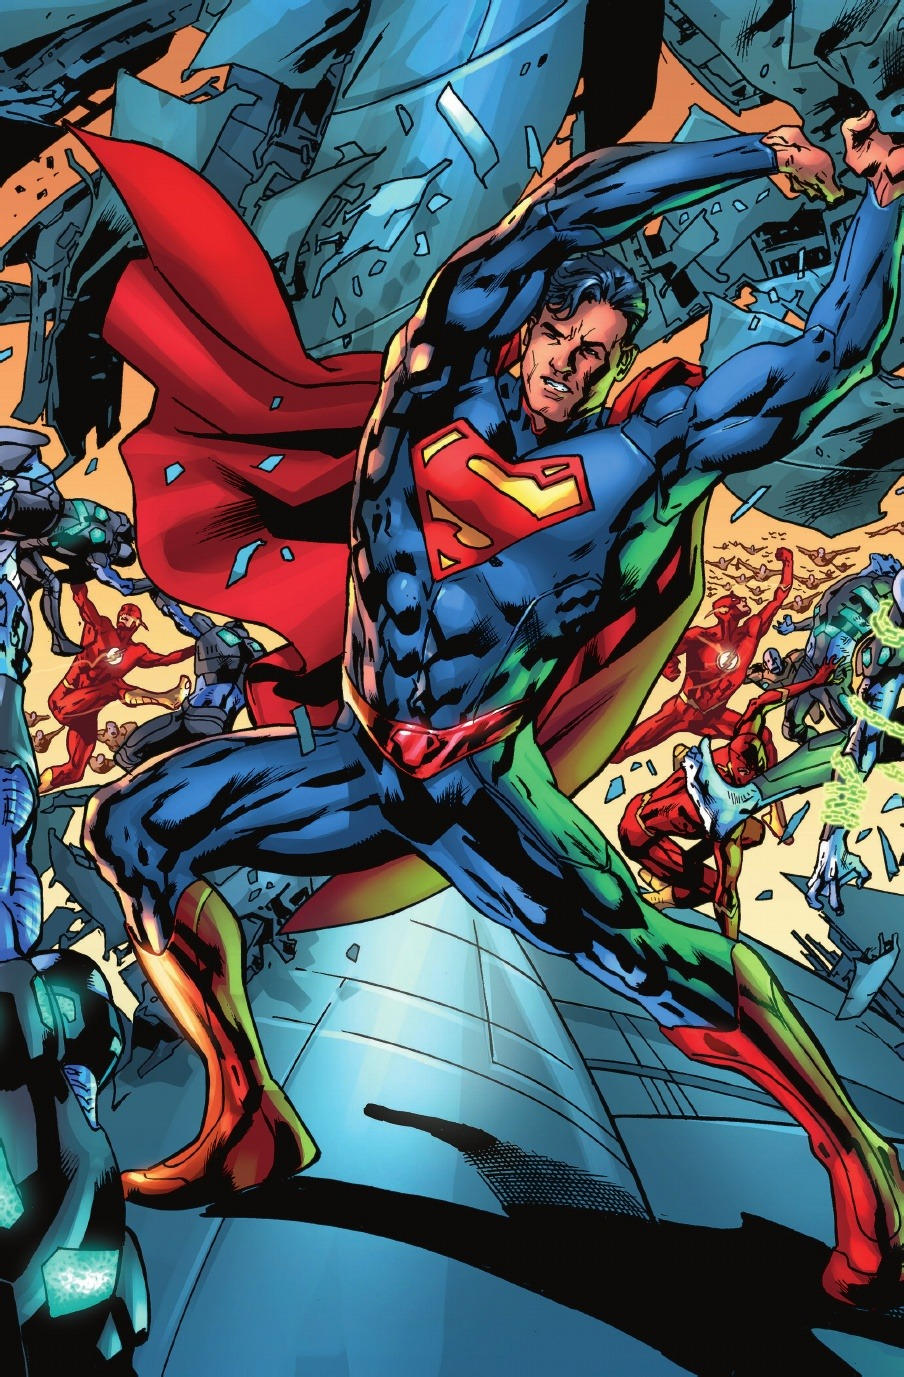 superman the missing link in american Superman is the most powerful being on planet earth, an alien immigrant named kal-el from the planet krypton who was raised in smallville, kansas, to become an american superhero.